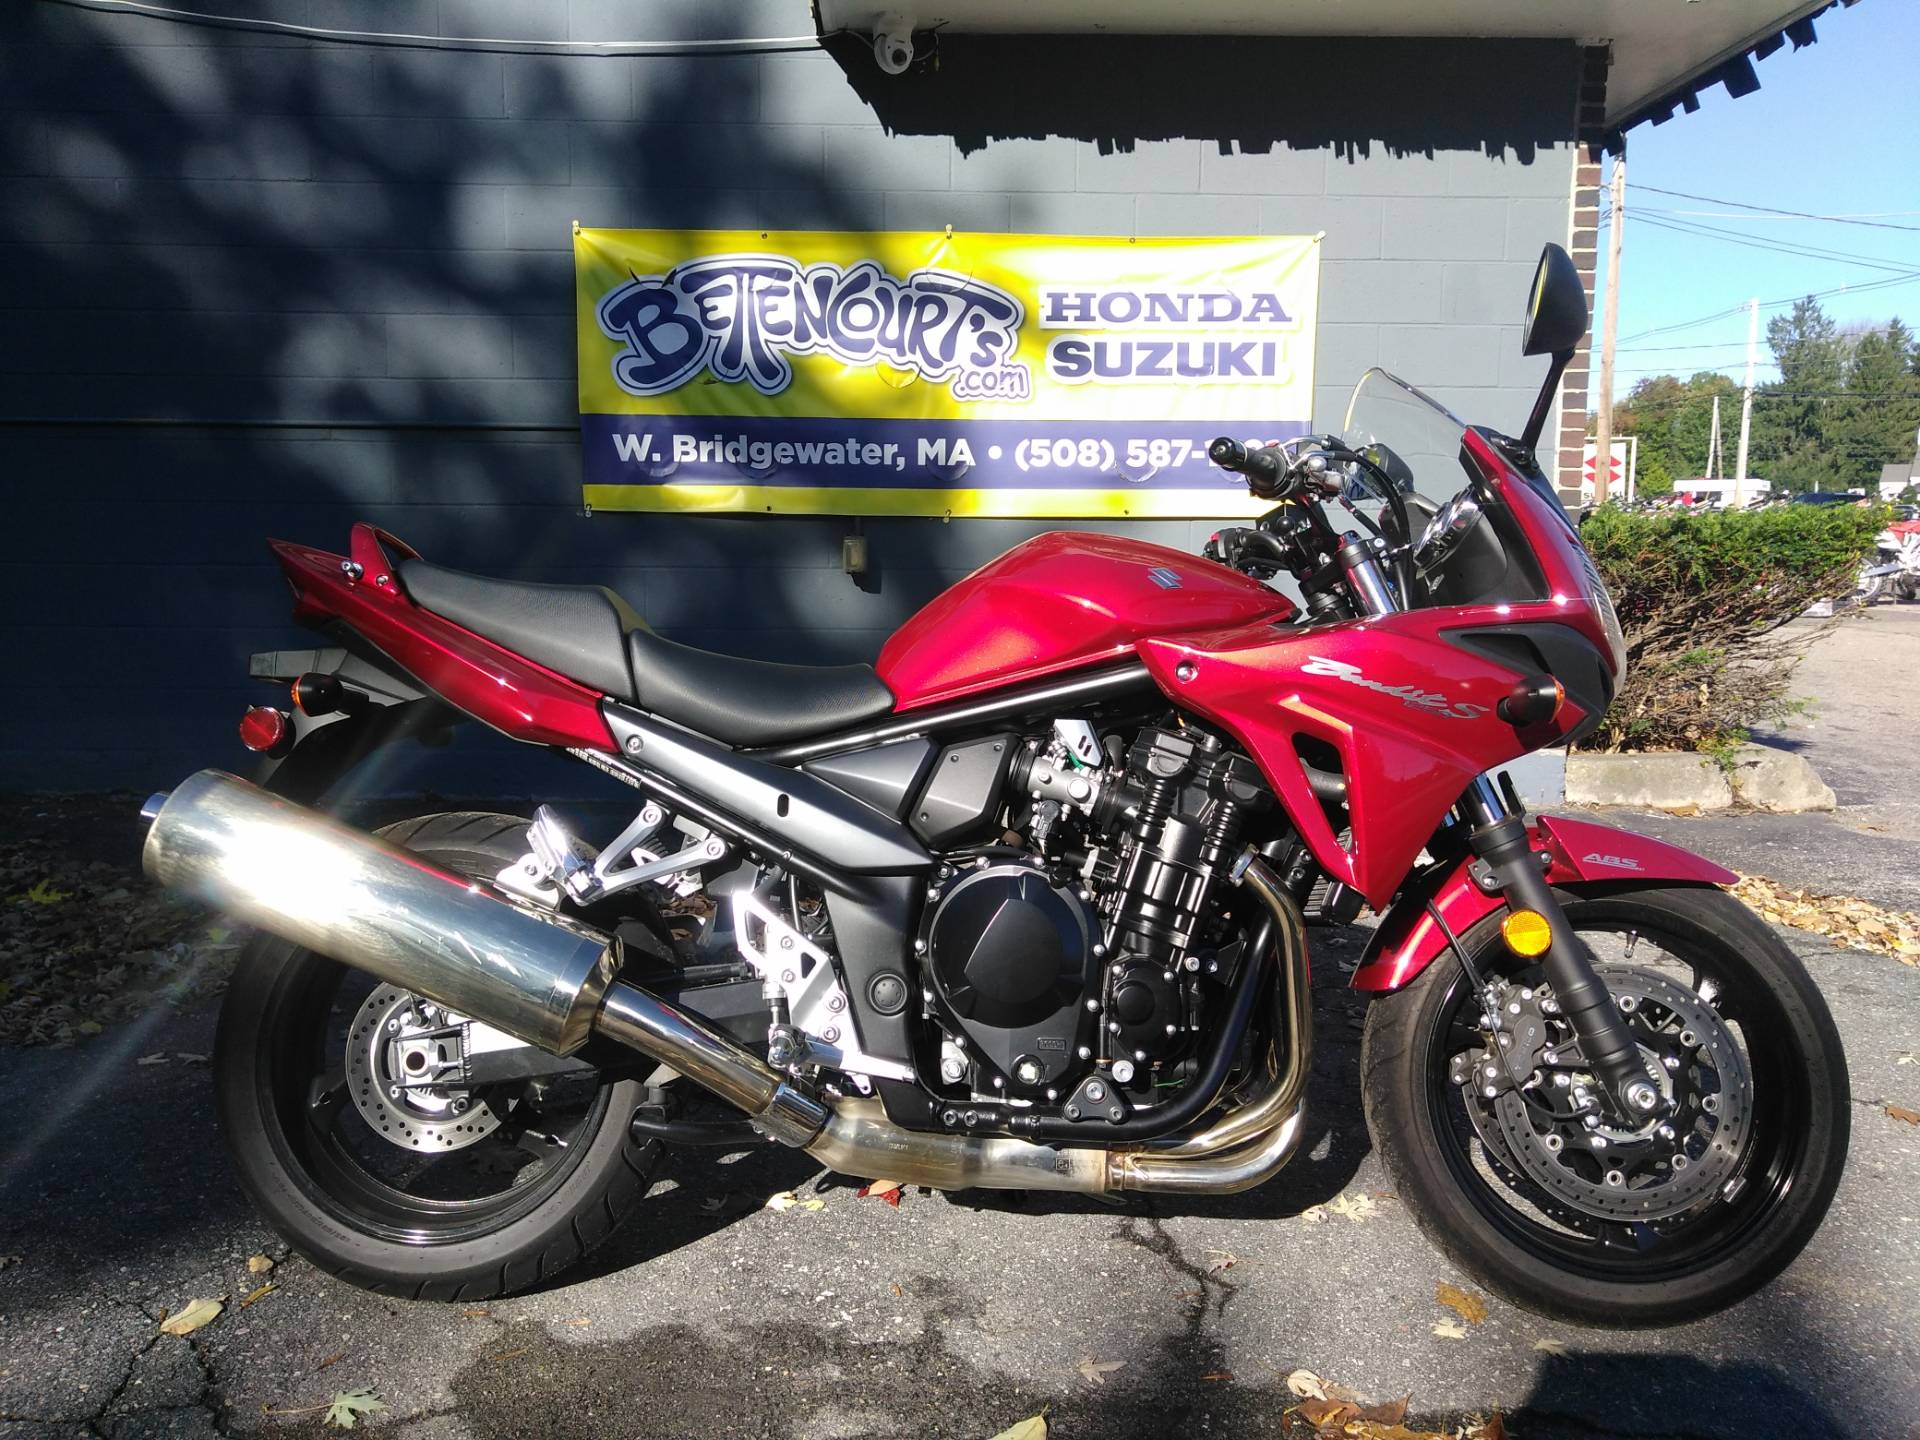 2016 Suzuki Bandit 1250S ABS in West Bridgewater, Massachusetts